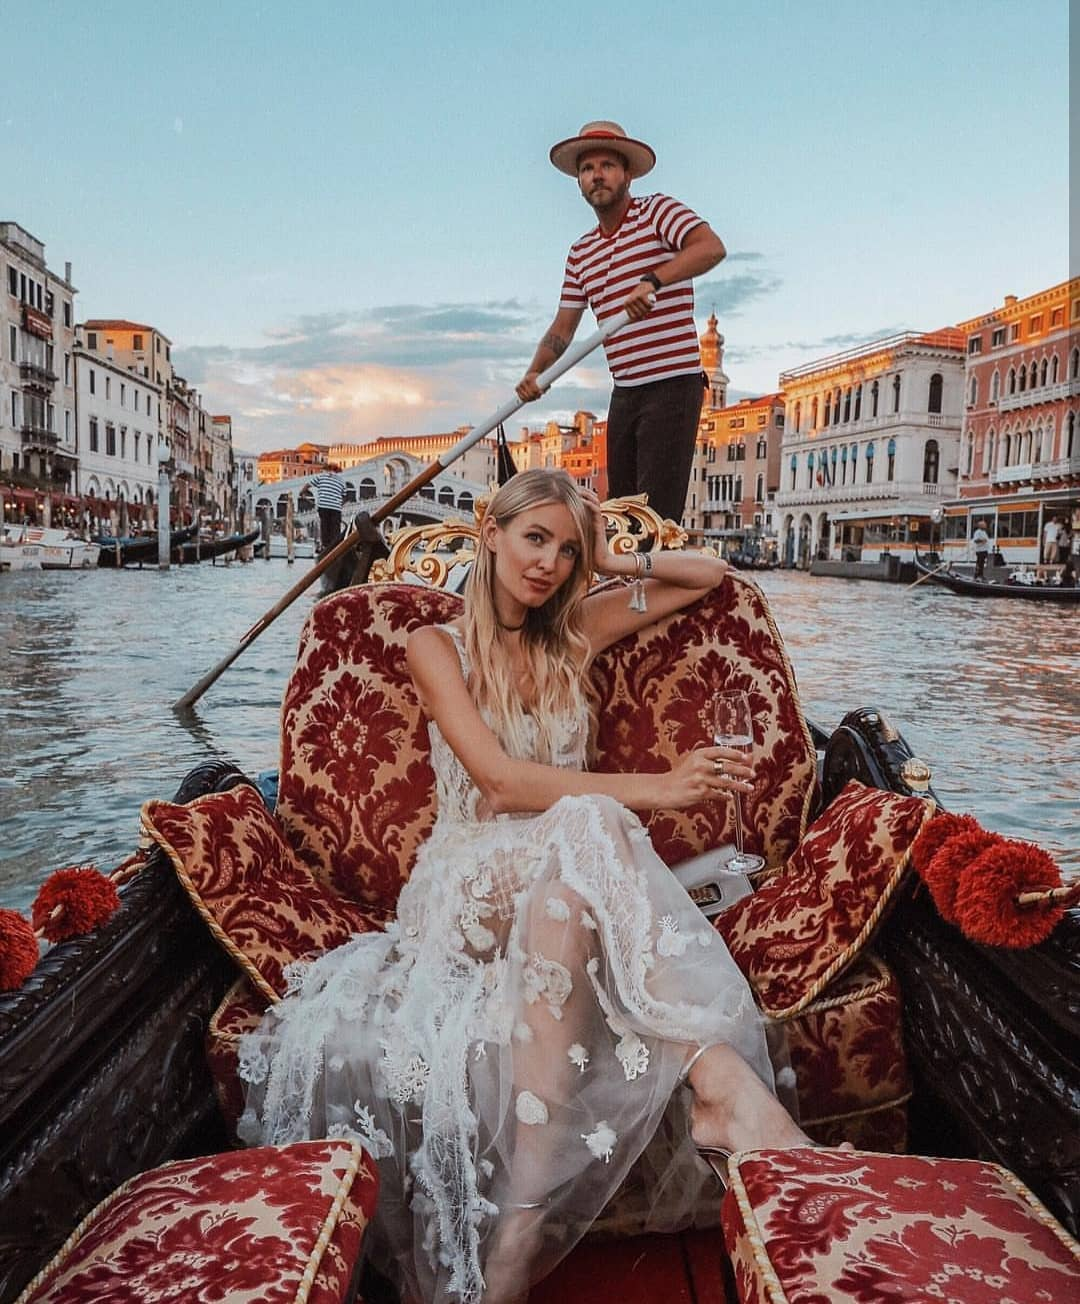 Semi-Sheer White Lace Maxi Gown For Venice Italy Trip This Summer 2020